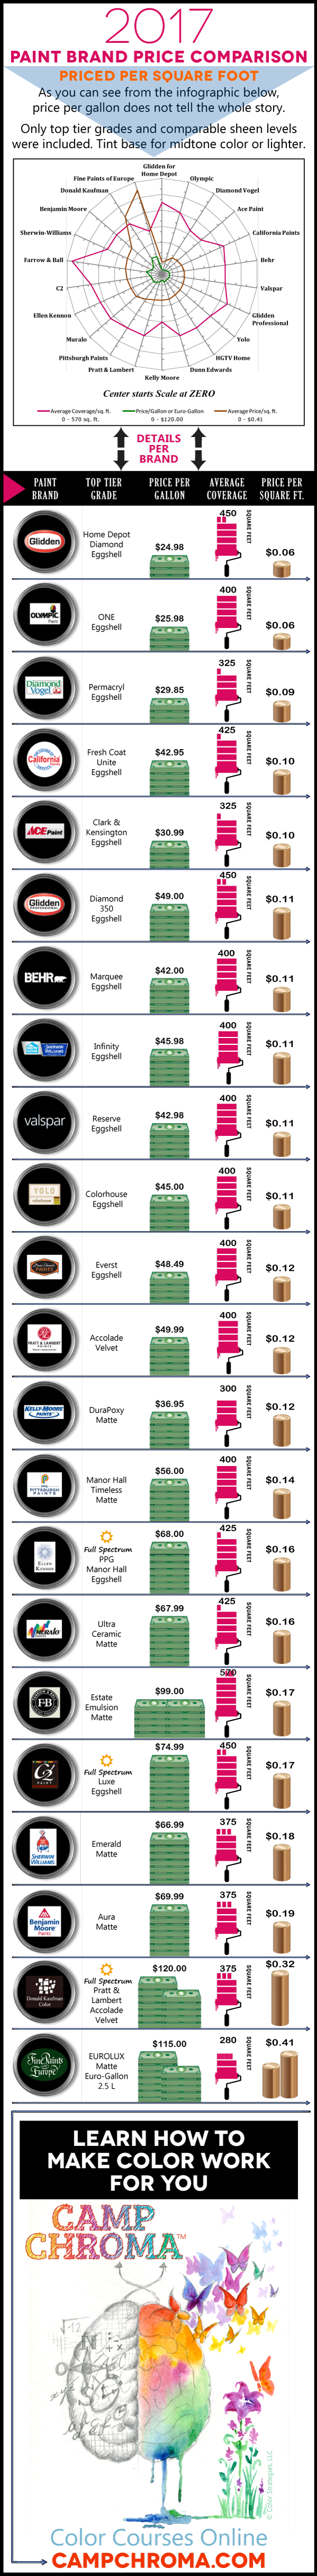 Paint Price Comparison 2017 Infographic Includes 22 Major Brands How To Design Tips Paint